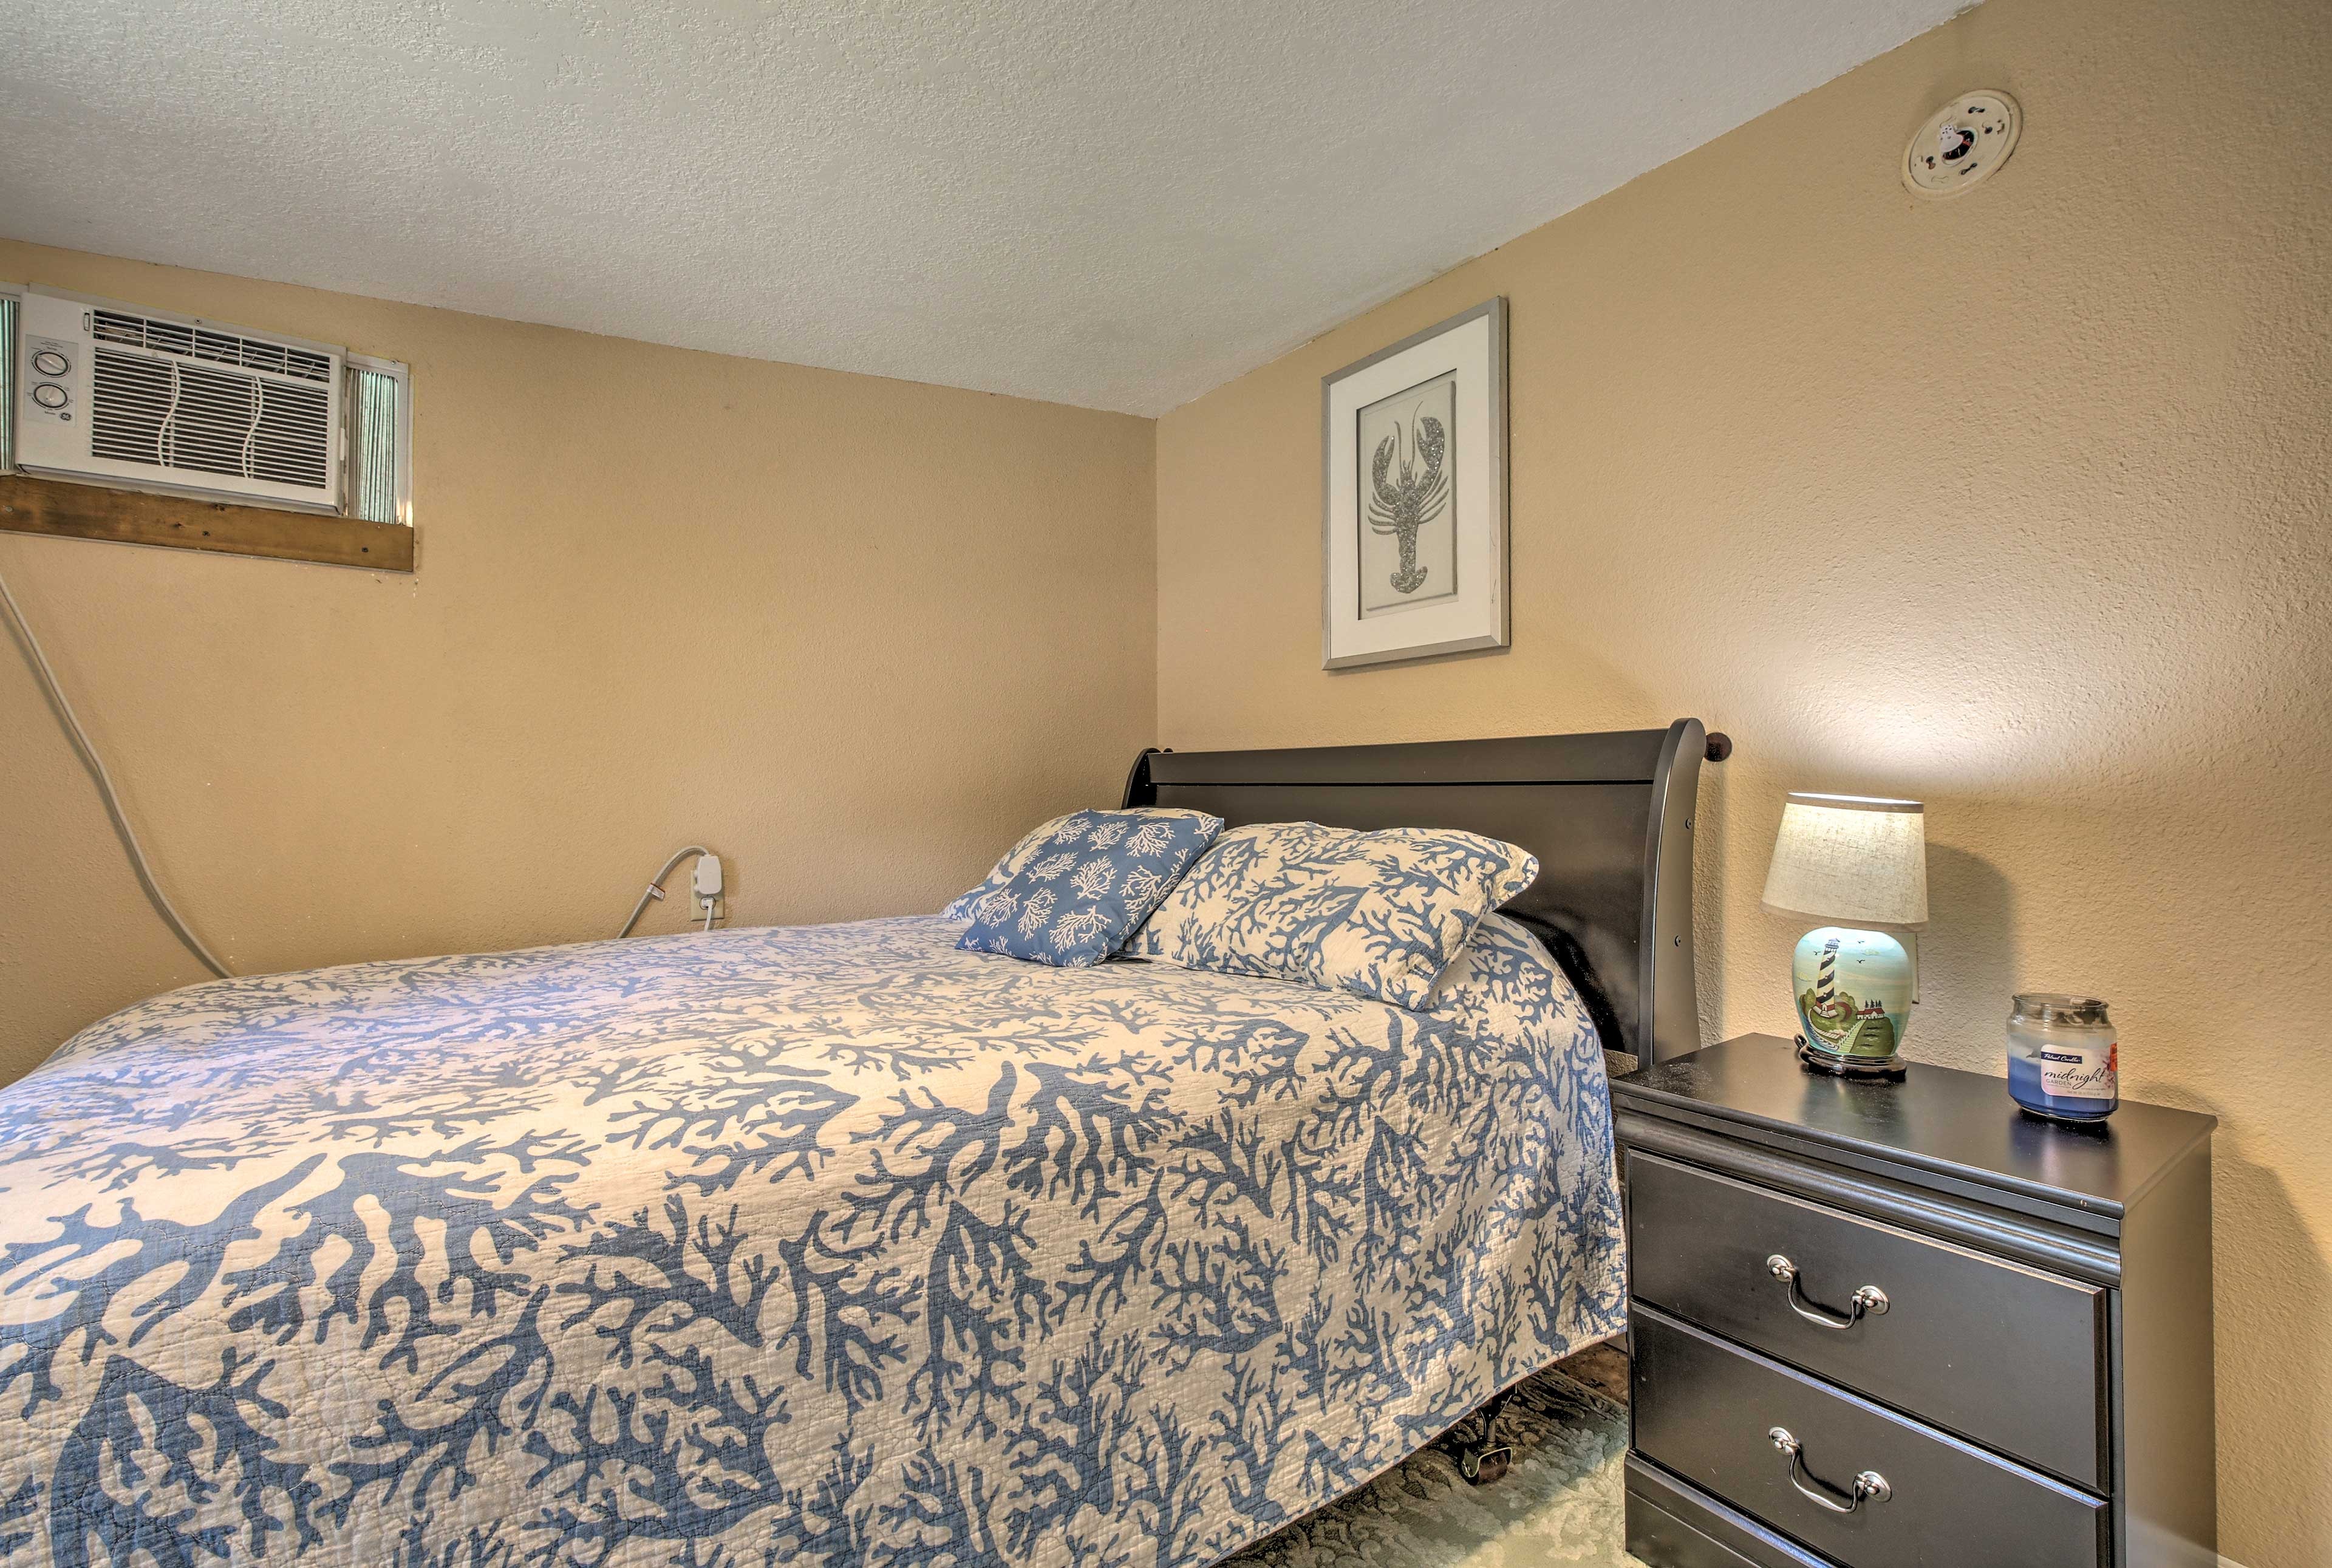 You'll sleep well at night on the comfortable queen-sized bed.